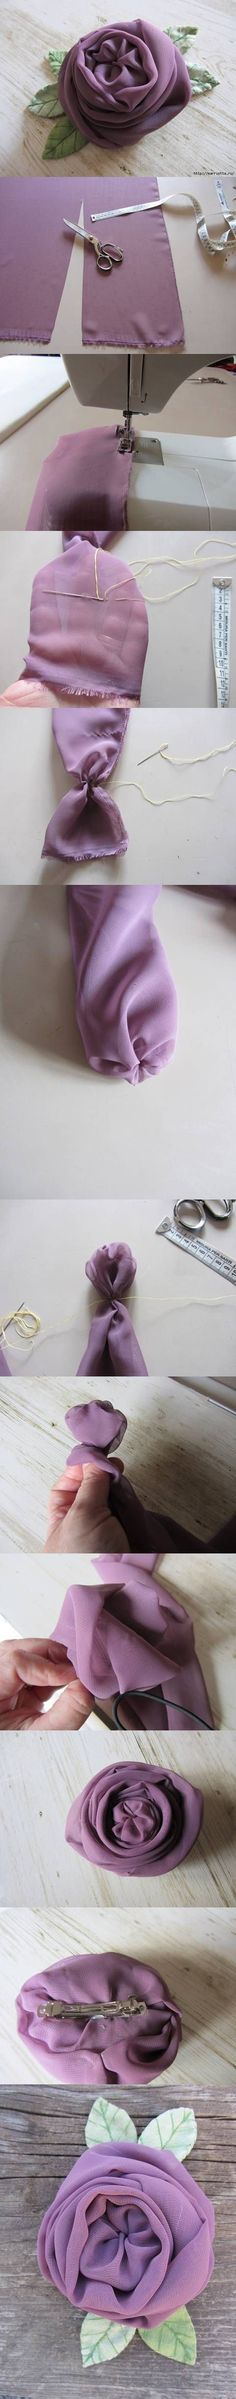 DIY Chiffon English Rose